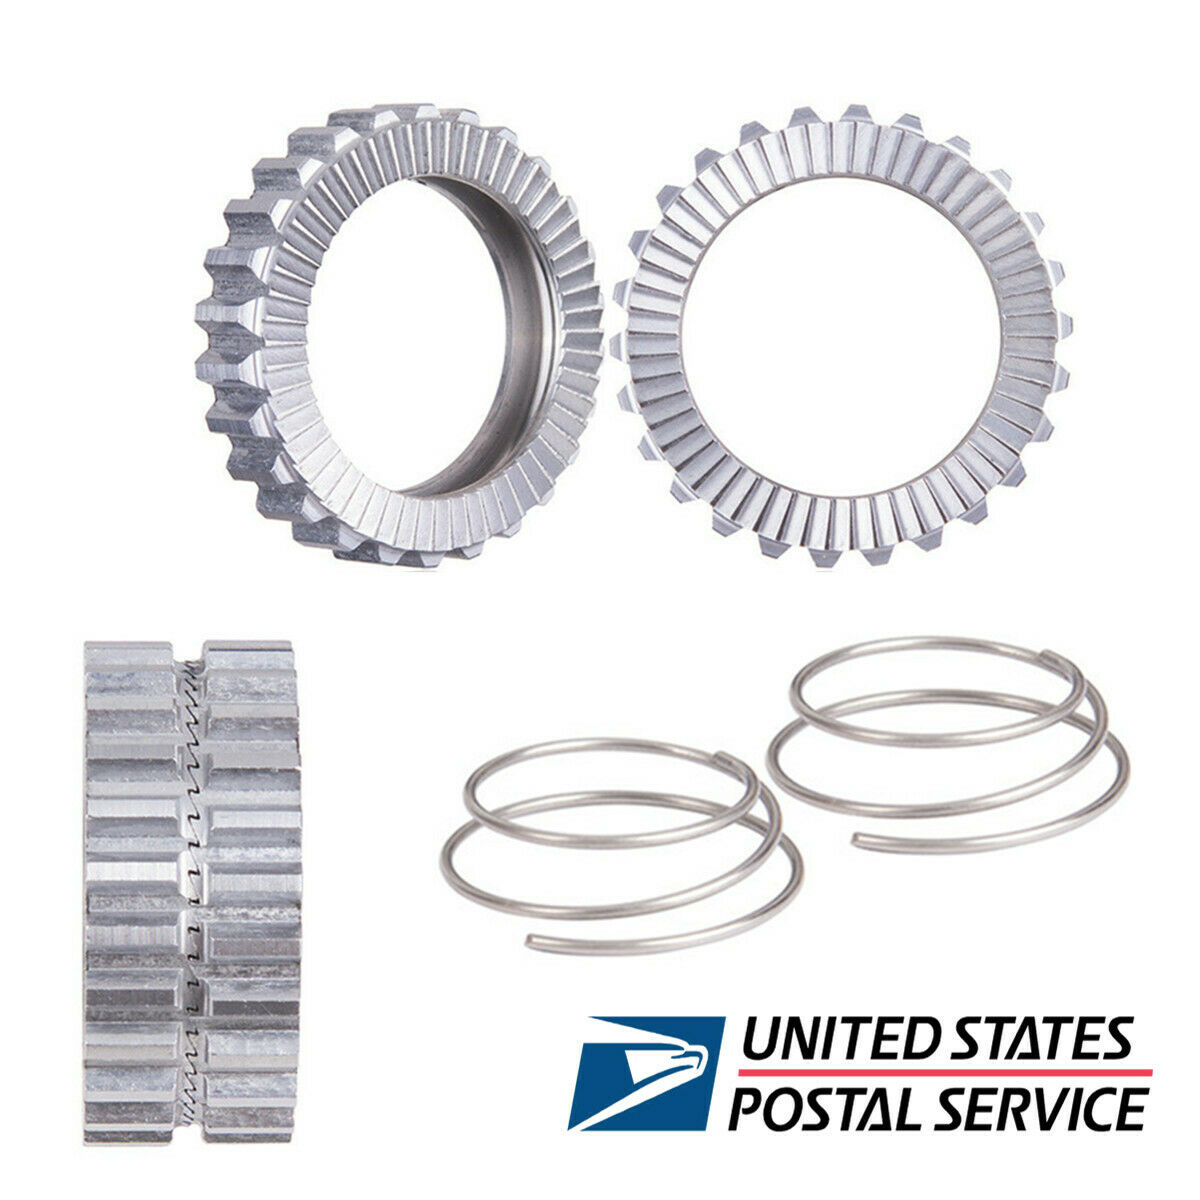 Hub Service Kit 54  Teeth 2 Star Ratchets +2 Cone Springs Fit for DT Swiss Wheel  good price